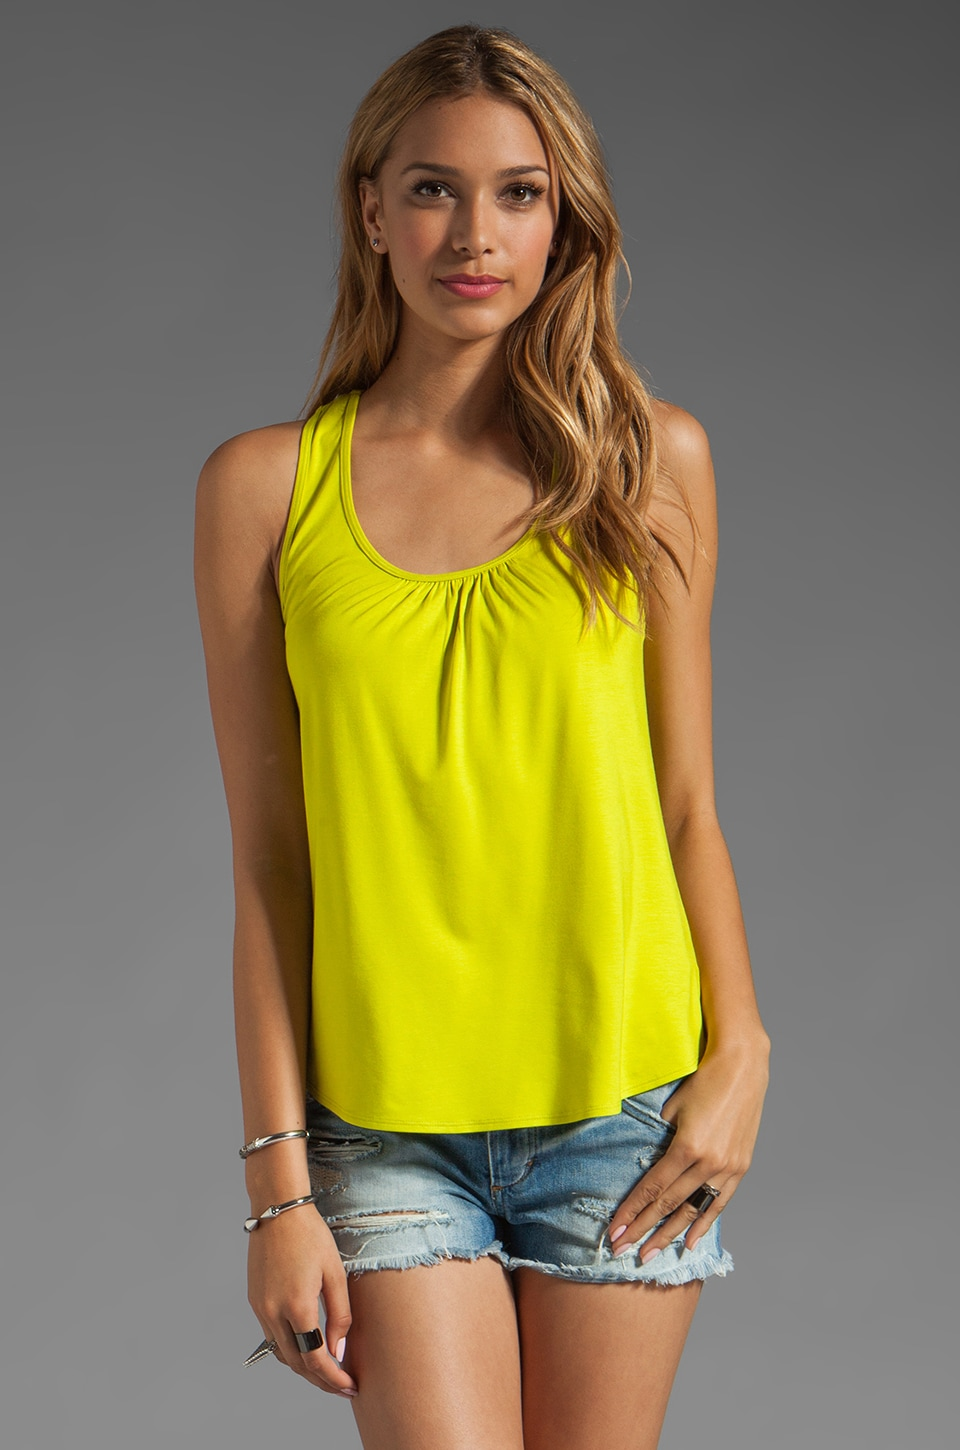 Trina Turk Brady Top in Glowstick